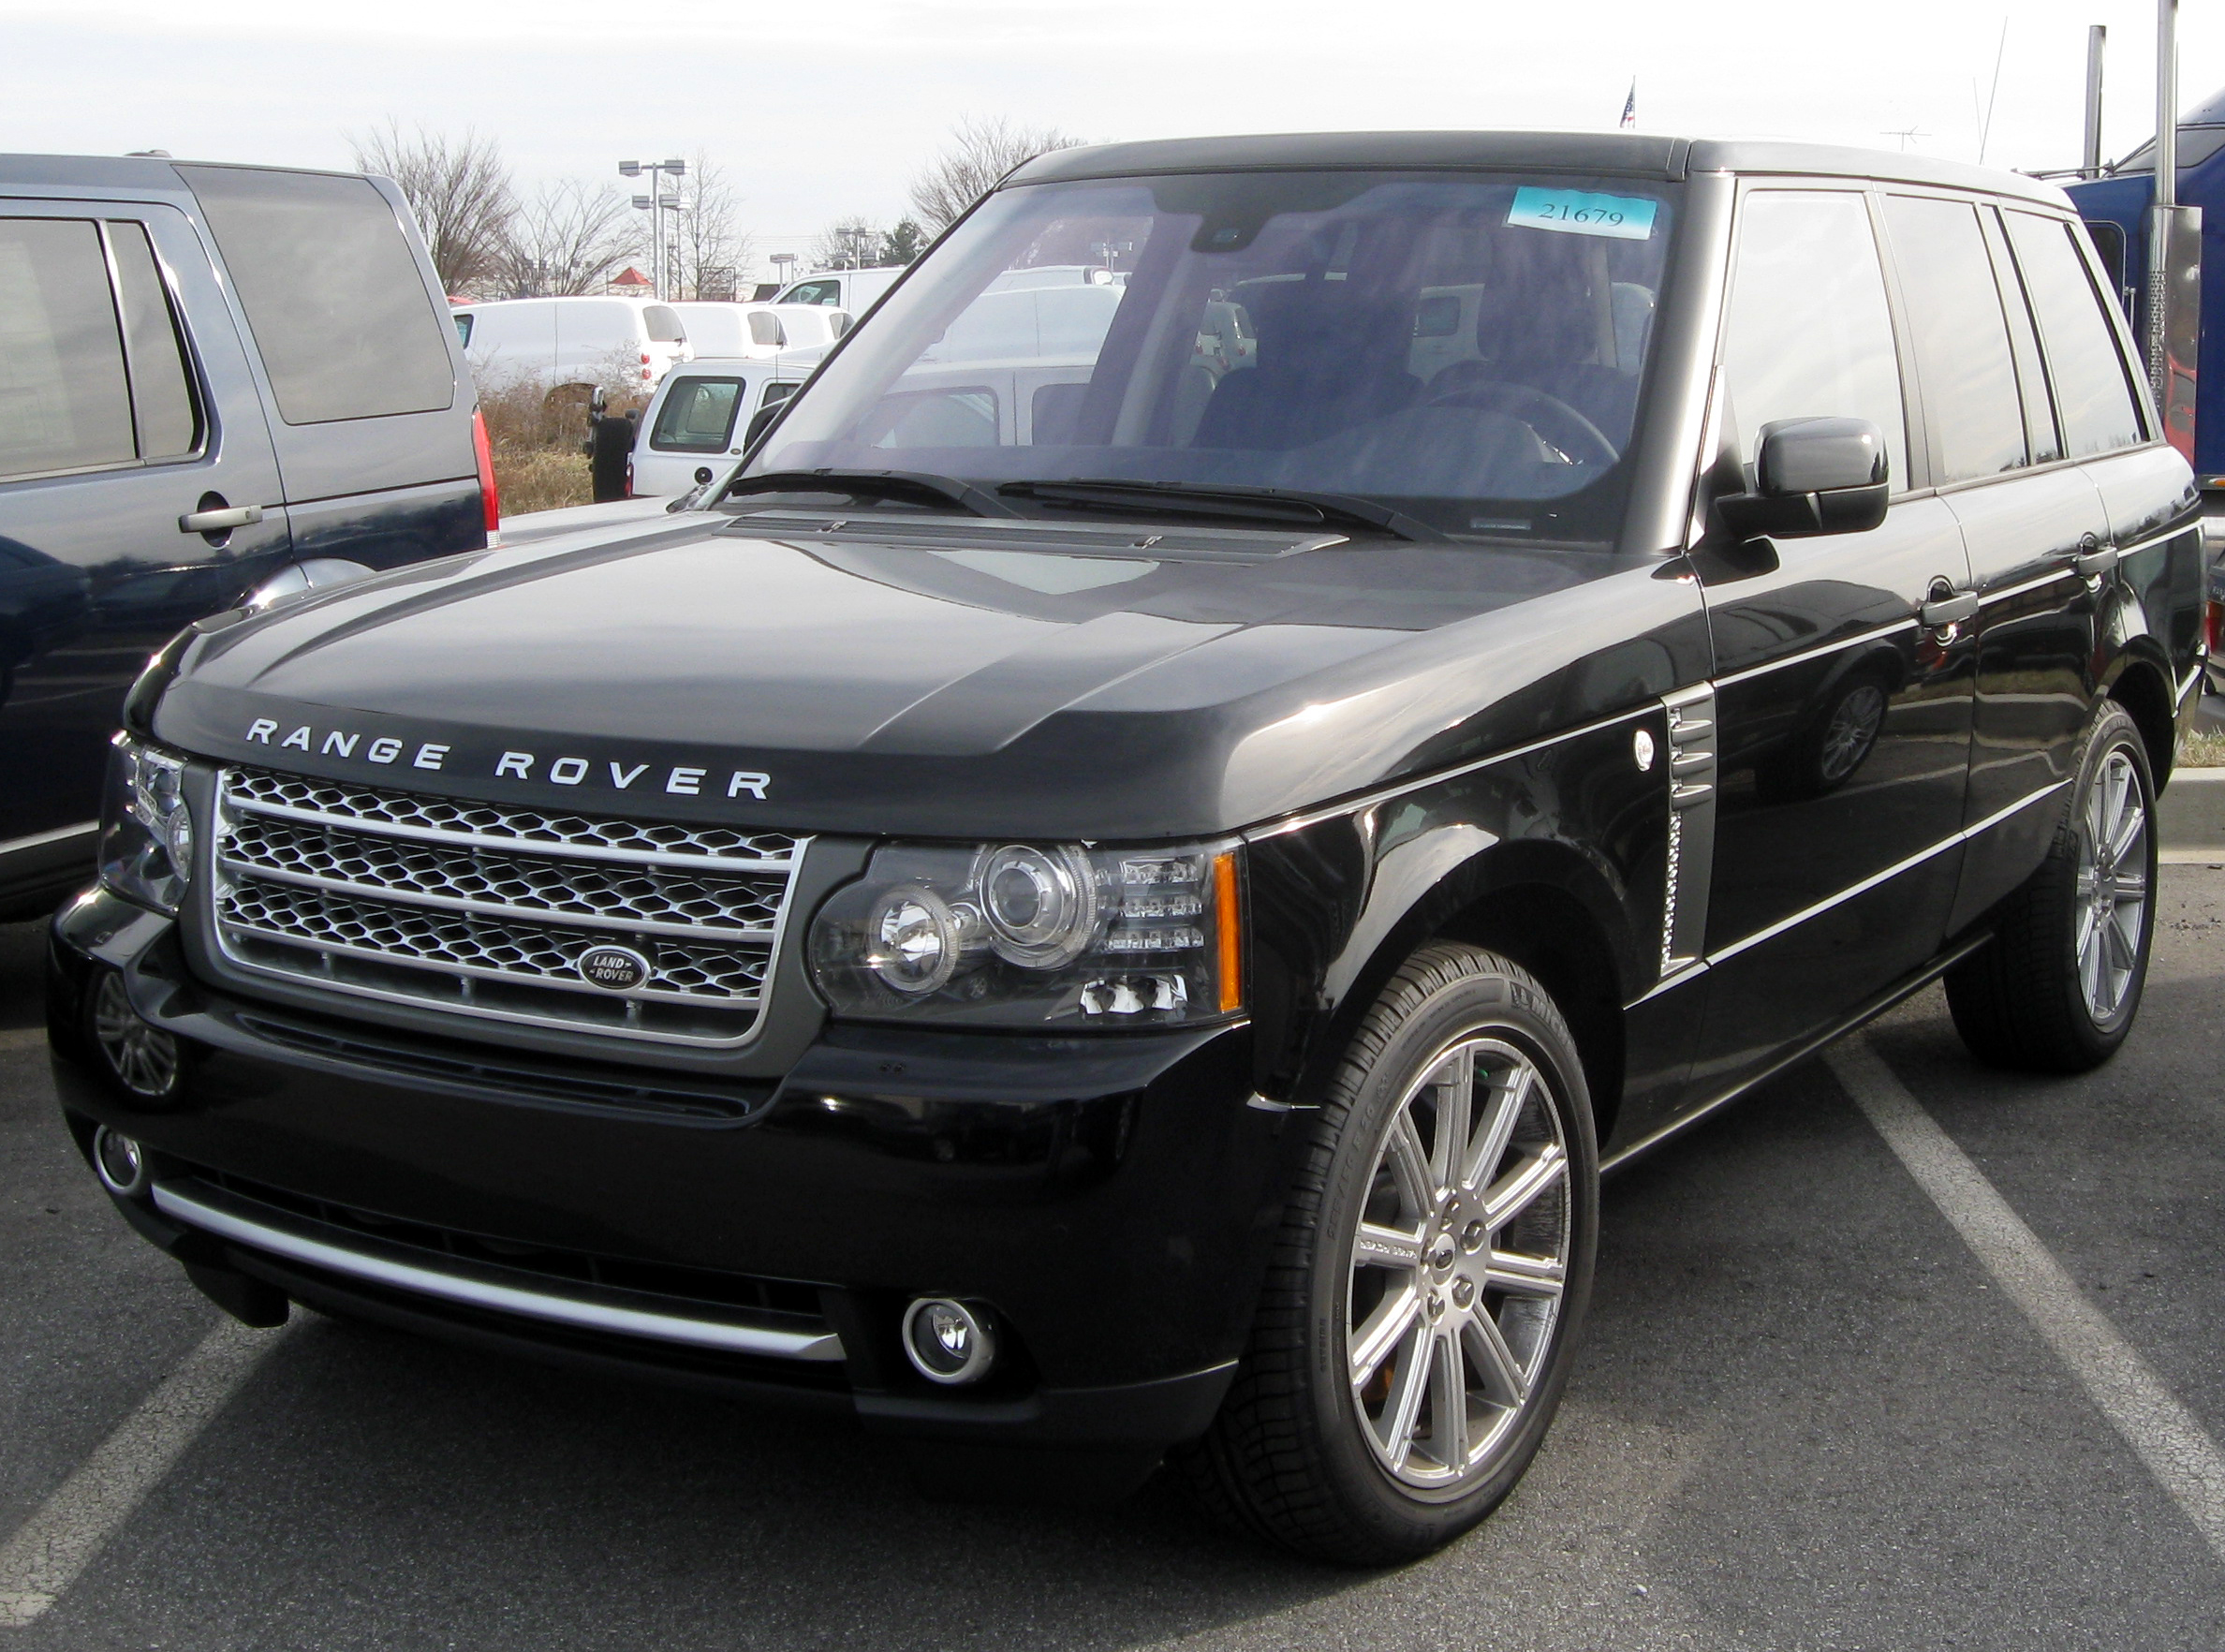 bestand 2011 range rover 12 31 wikipedia. Black Bedroom Furniture Sets. Home Design Ideas